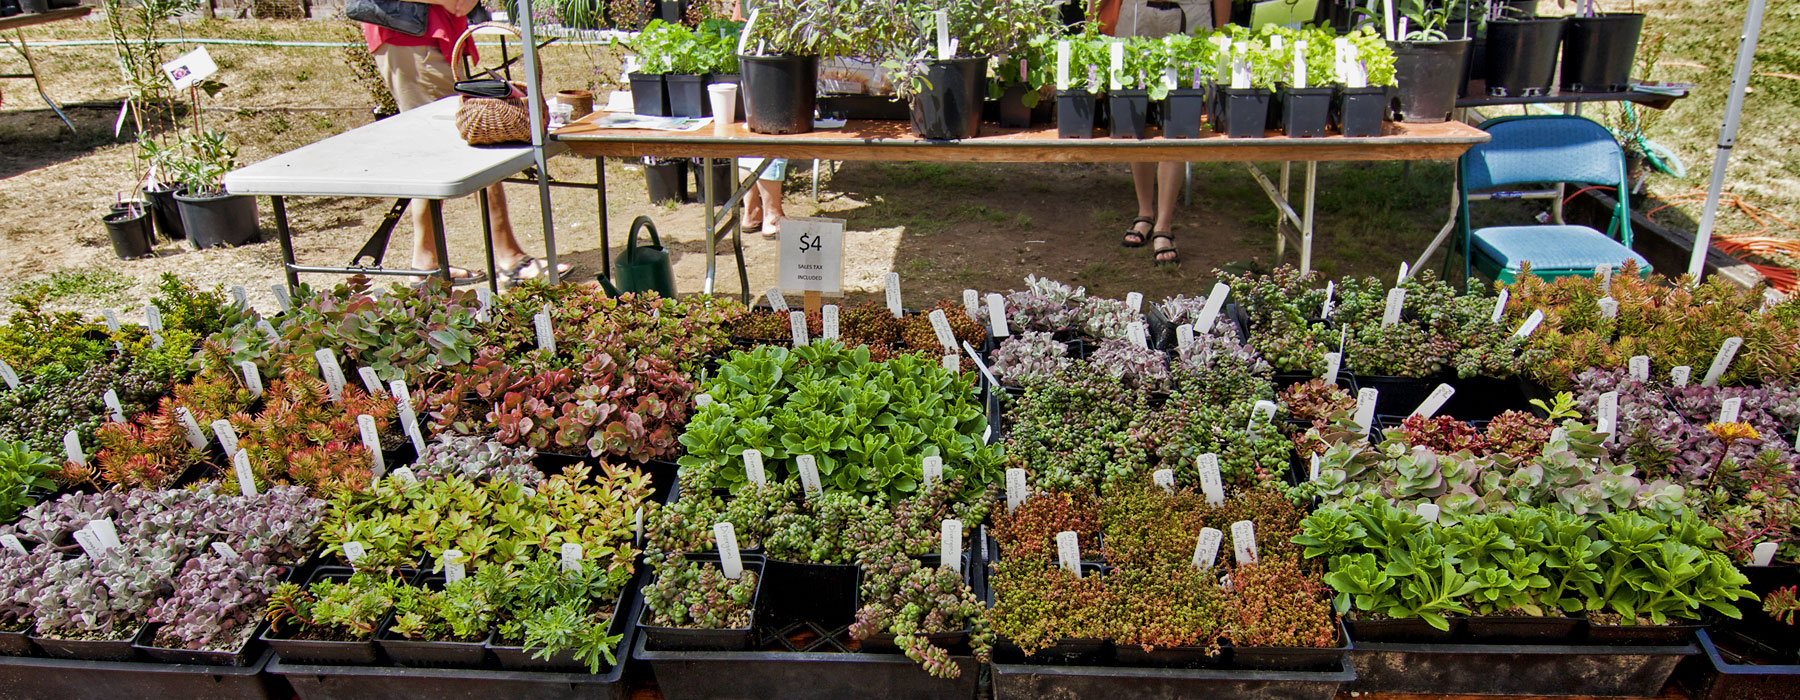 Events heronswood for Plants for sale